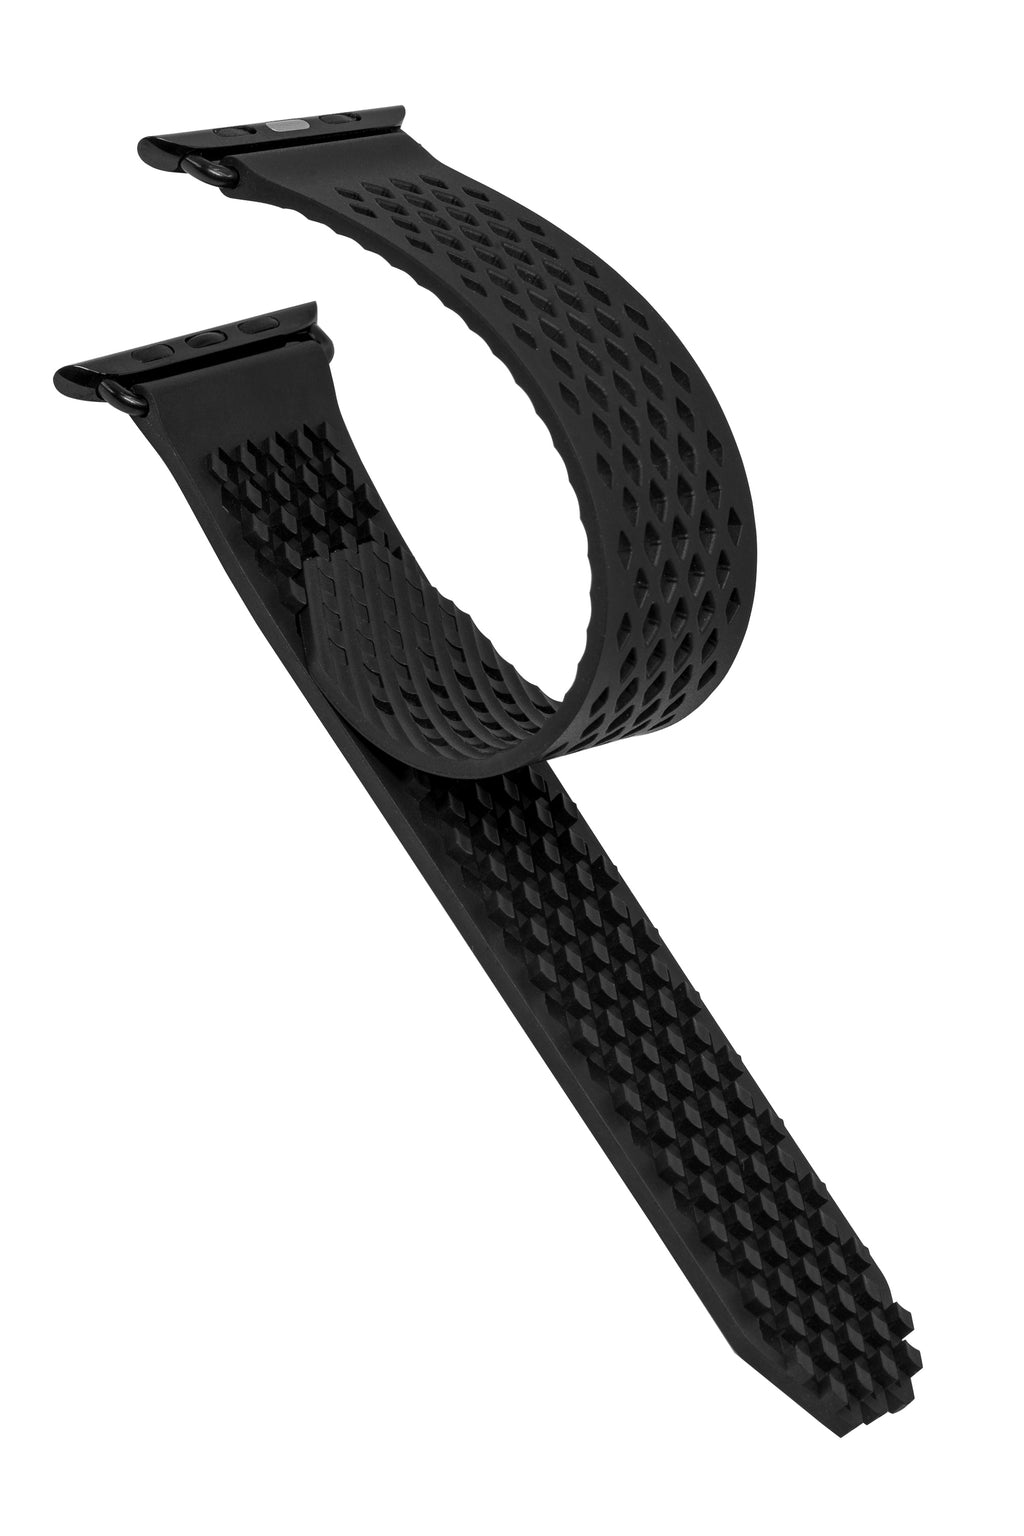 Noomoon LABB Interlocking Watch Strap for Apple Watch in BLACK with BLACK Hardware